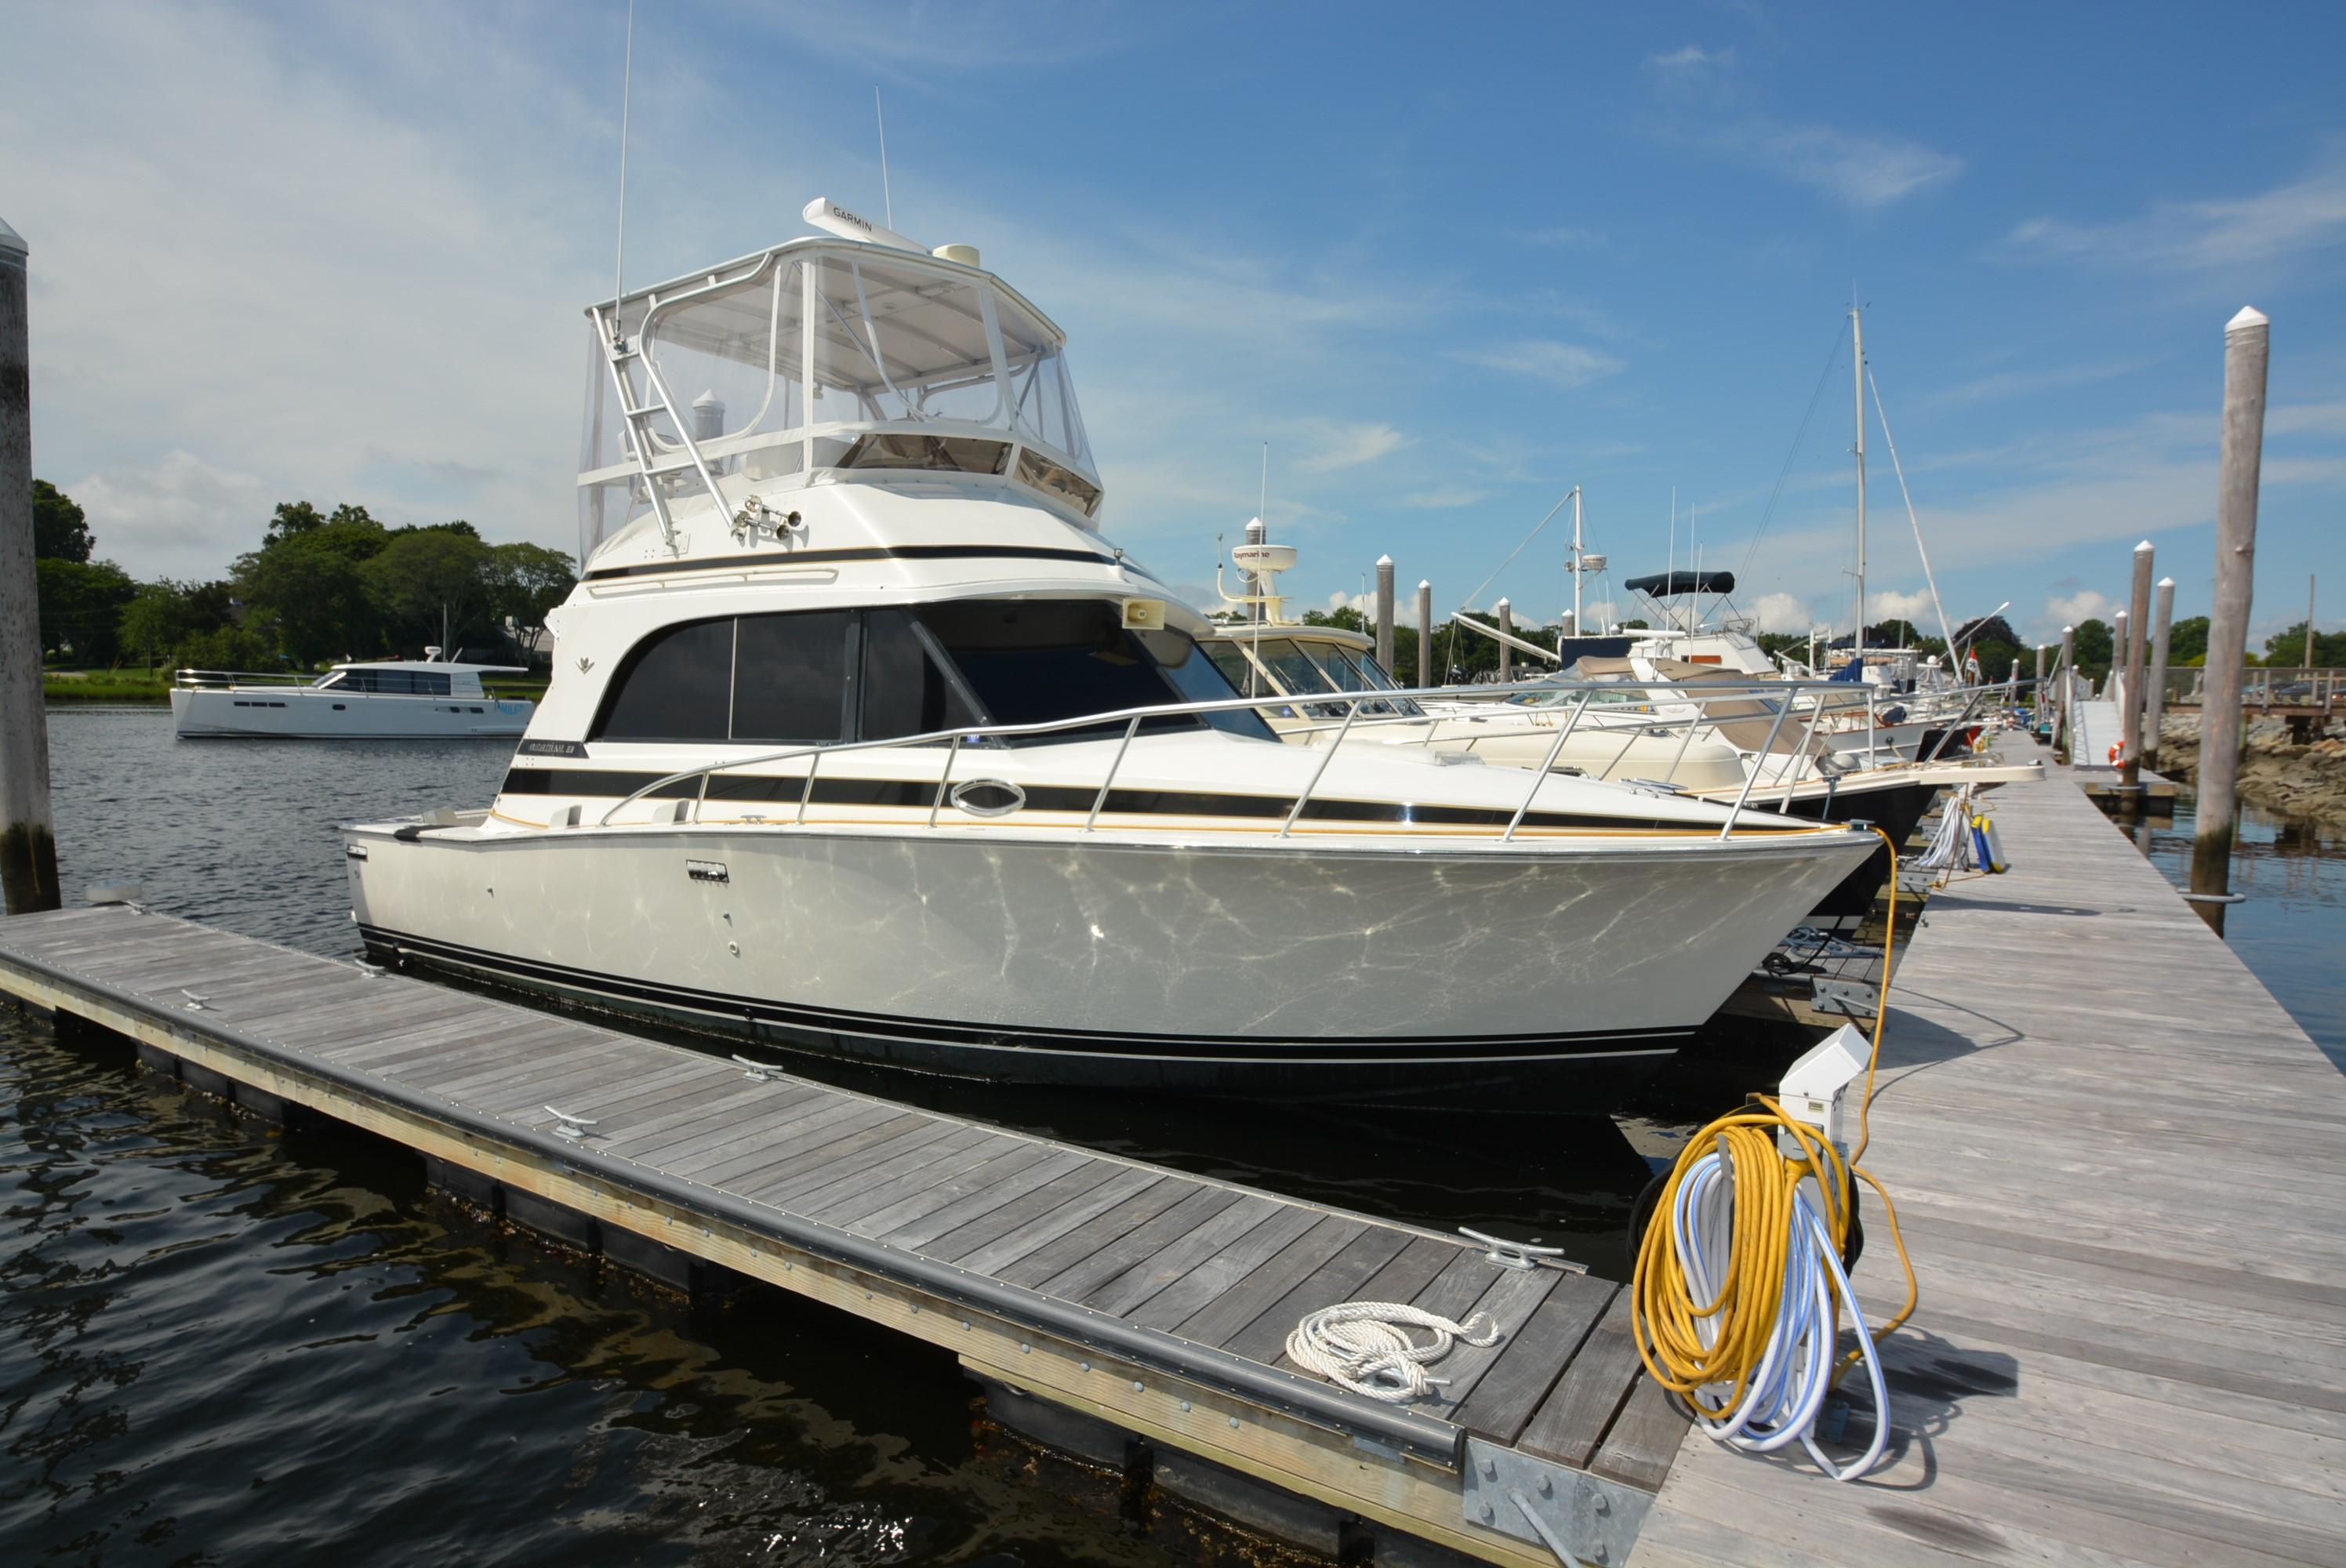 Boats for sale in 5, United States - www.yachtworld.com